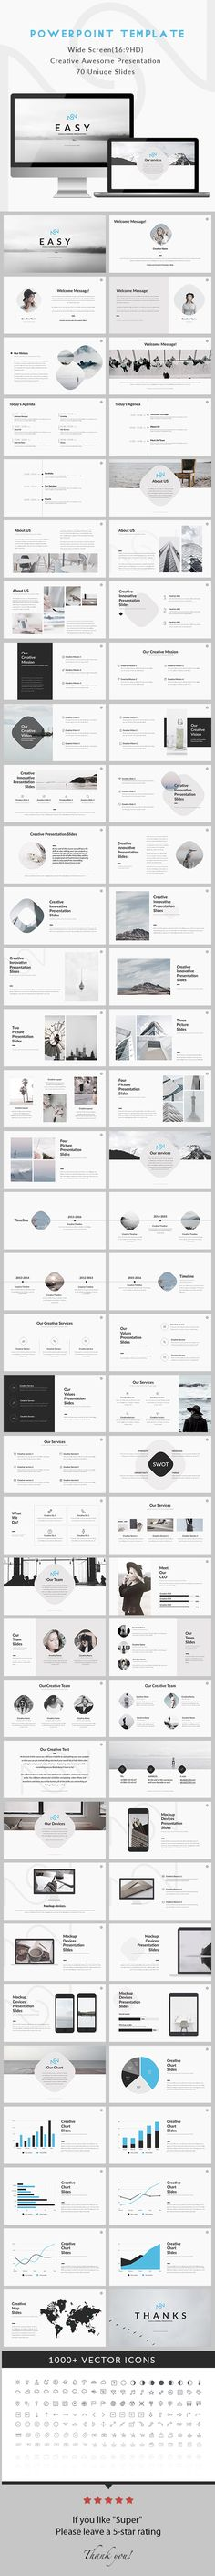 Easy  Creative Minimal Powerpoint Template  #creative #report • Download ➝ https://graphicriver.net/item/easy-creative-minimal-powerpoint-template/18369976?ref=pxcr